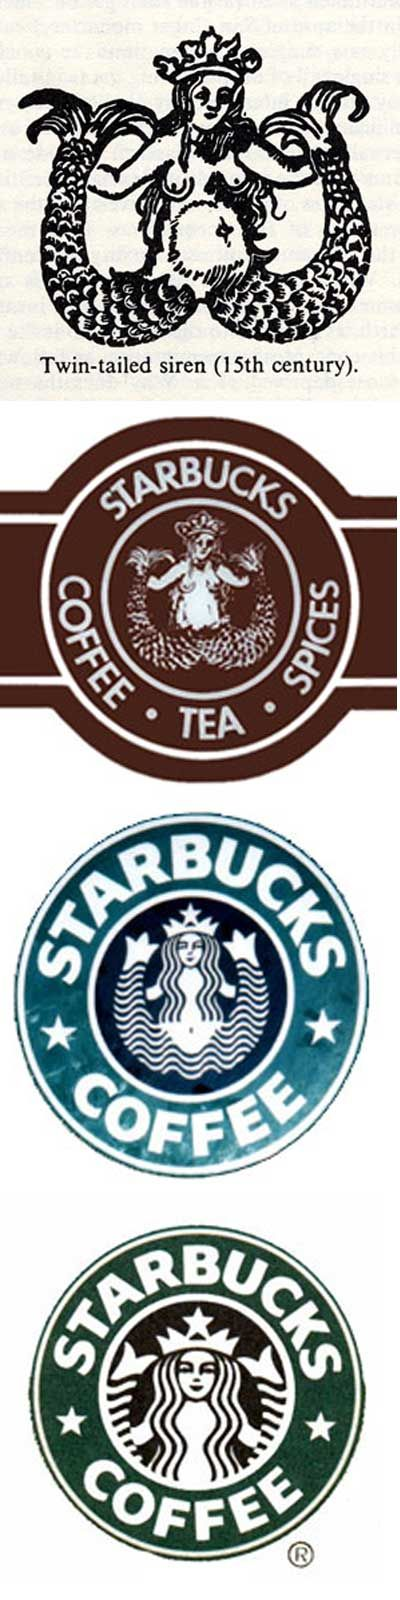 Starbucks first logo Starbucks logo, Logo evolution